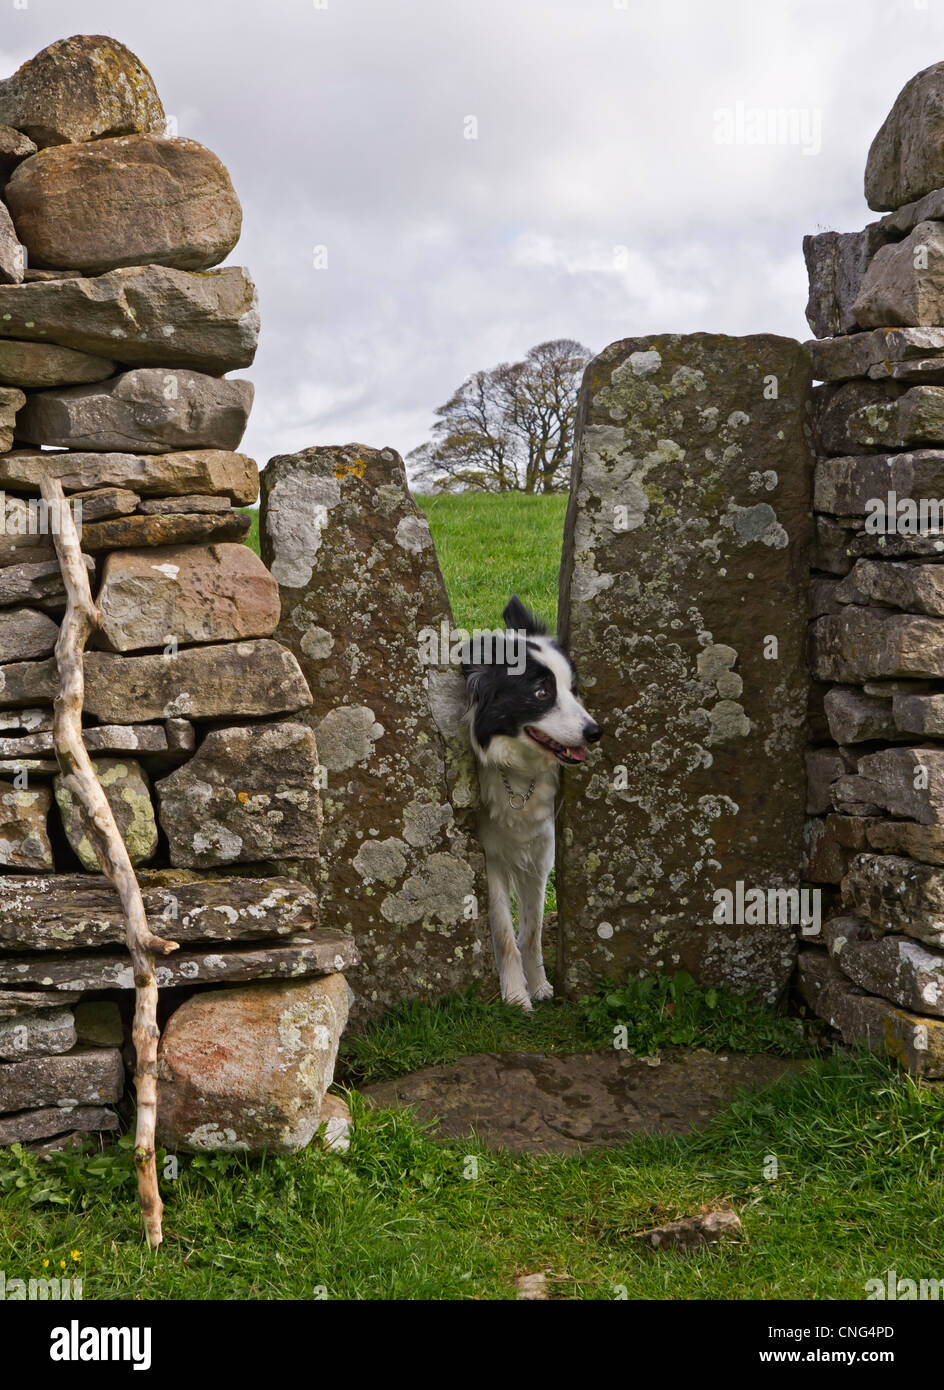 [Image: a-squeeze-stile-in-a-dry-stone-wall-in-t...CNG4PD.jpg]